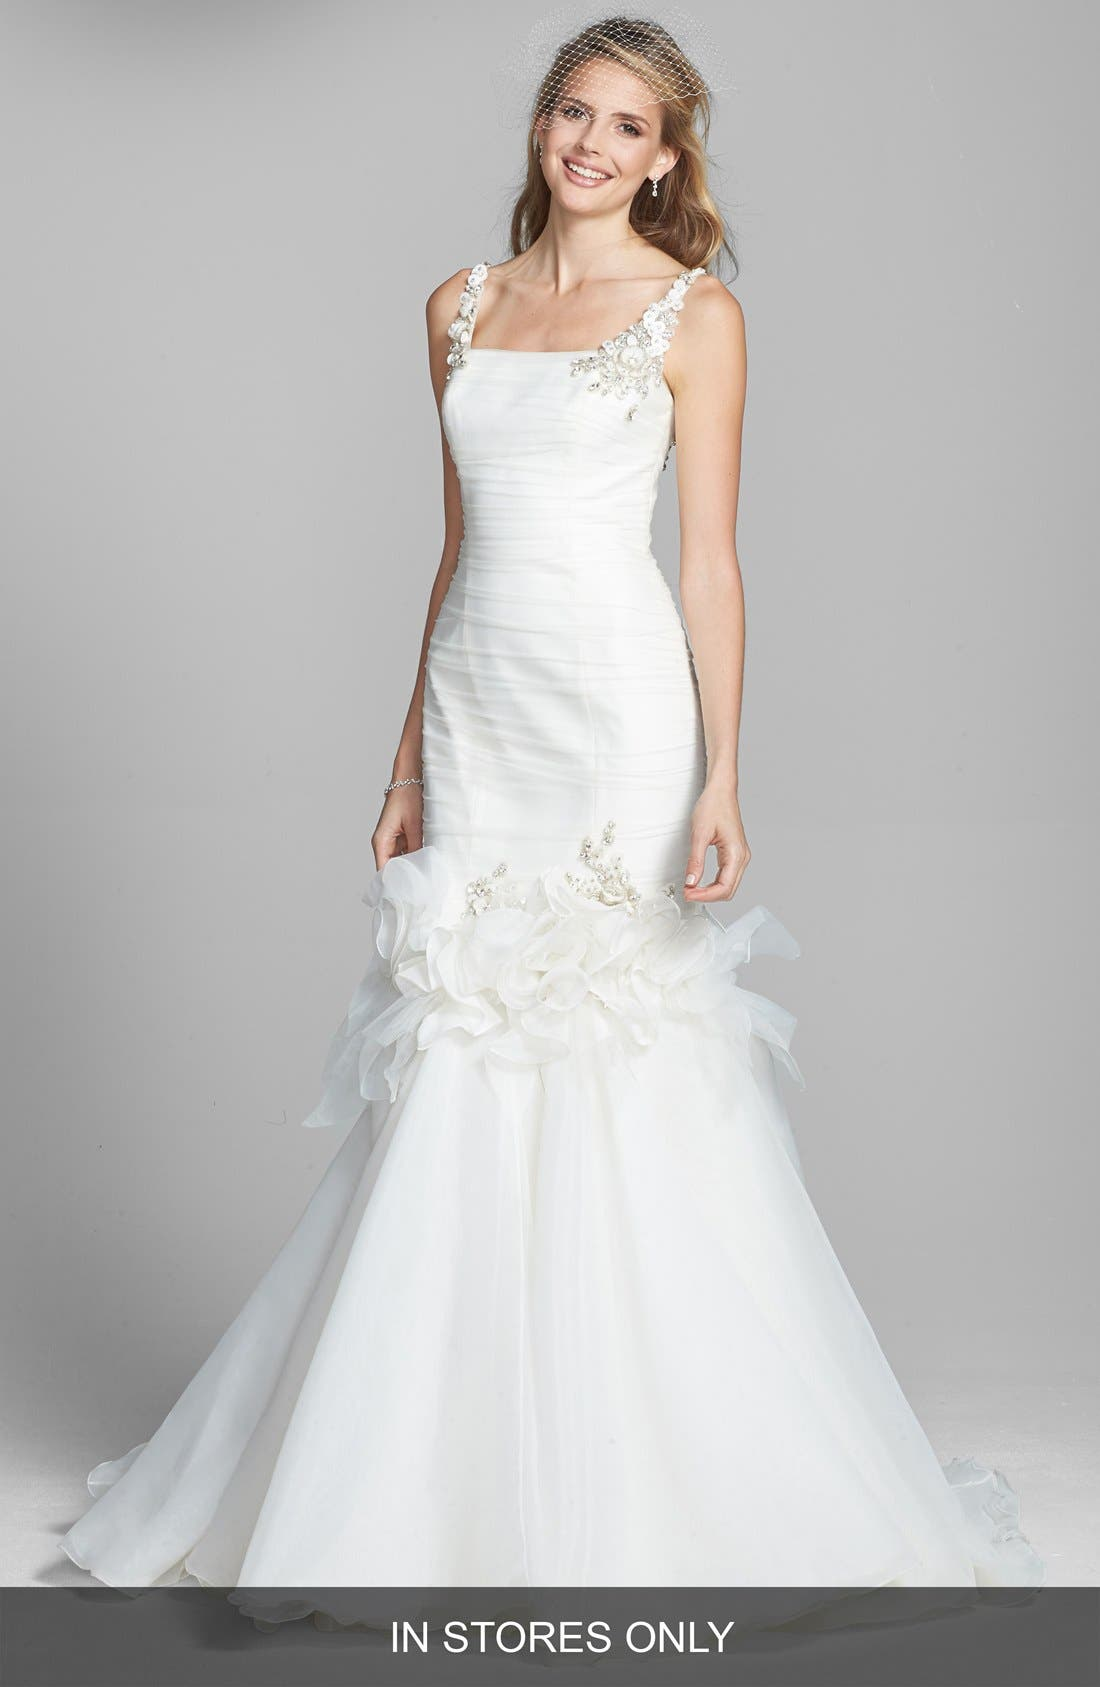 Main Image - Badgley Mischka Bridal 'Grace' Embellished Tulle & Chiffon Mermaid Dress (In Stores Only)